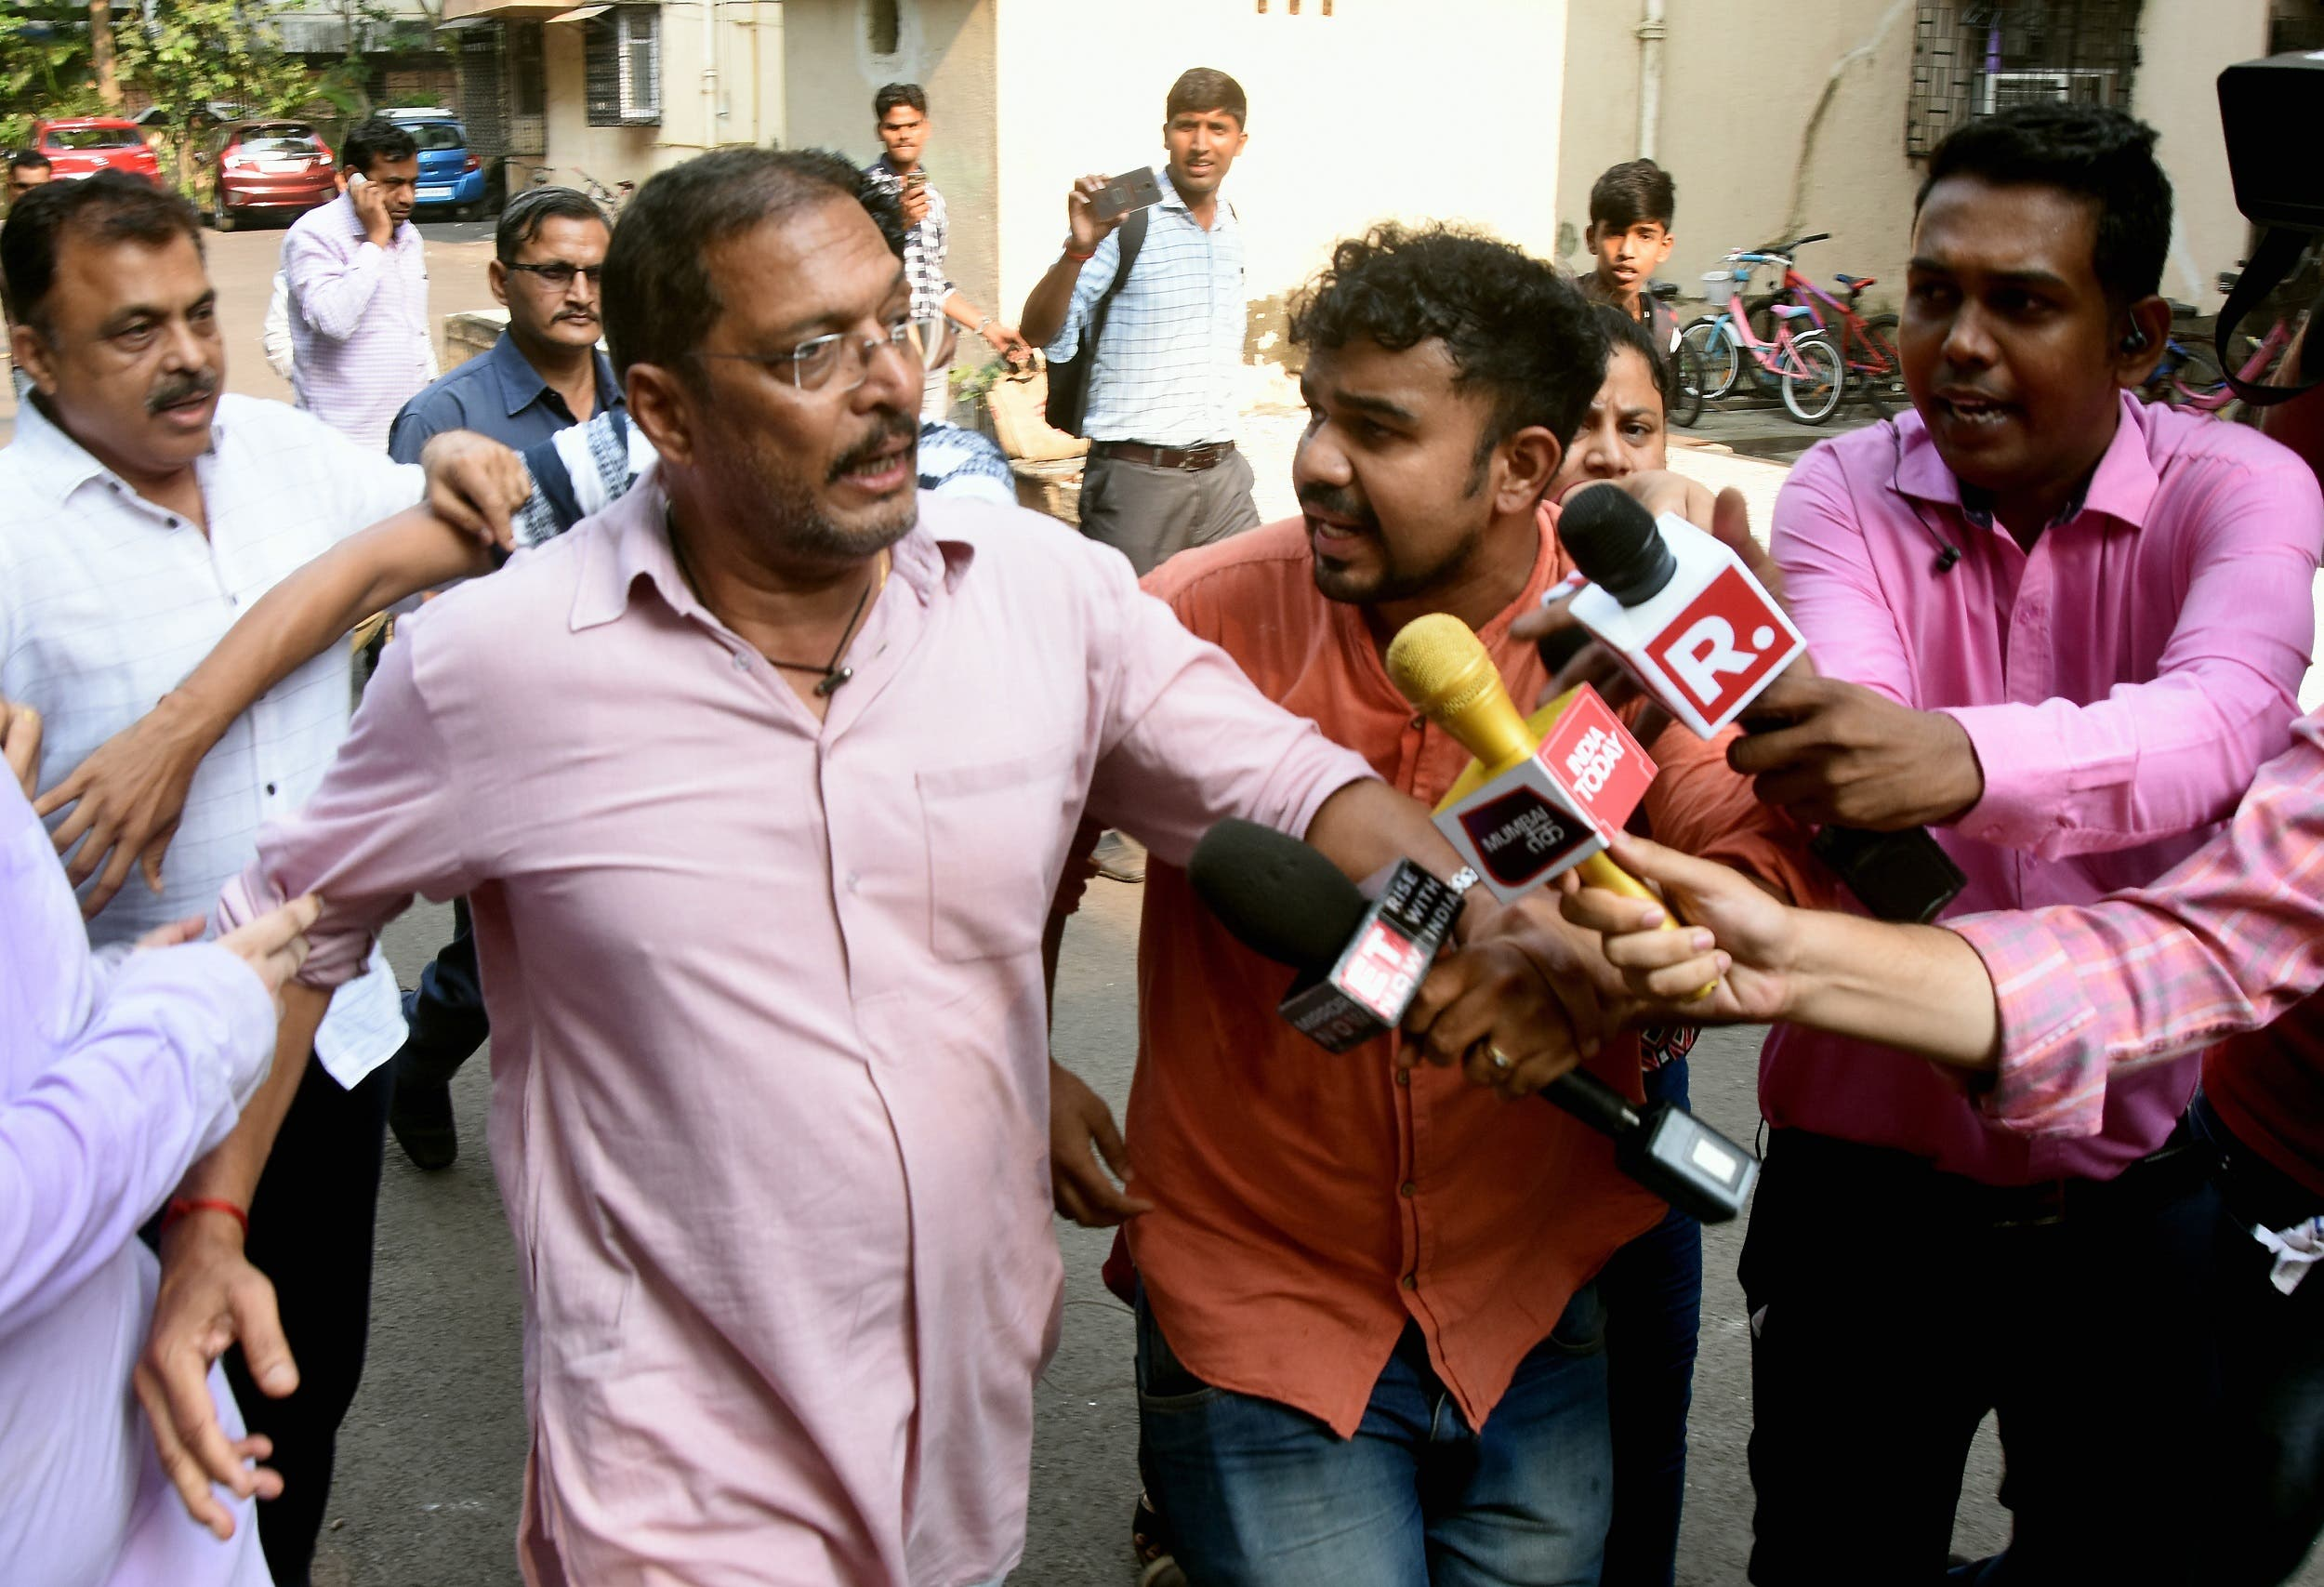 Bollywood actor Nana Patekar is mobbed by the media as he leaves after making a statement in Mumbai on October 8, 2018. (AFP)